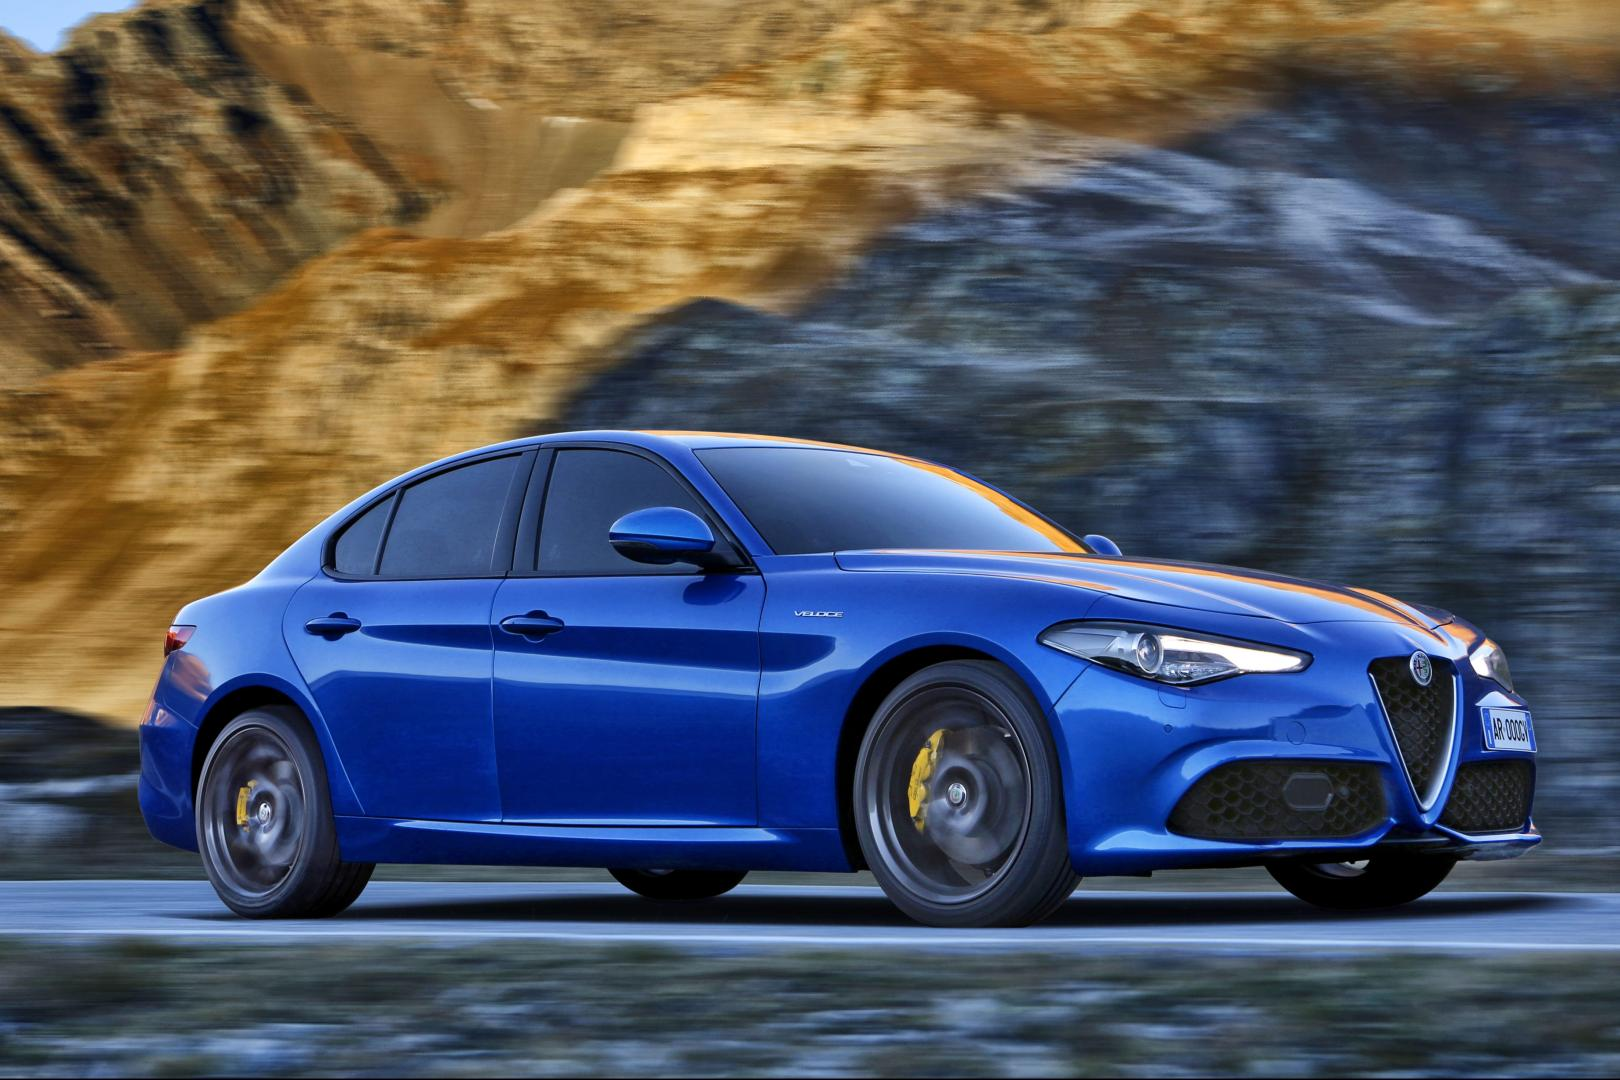 alfa romeo giulia veloce awd 2018 test en specificaties topgear. Black Bedroom Furniture Sets. Home Design Ideas